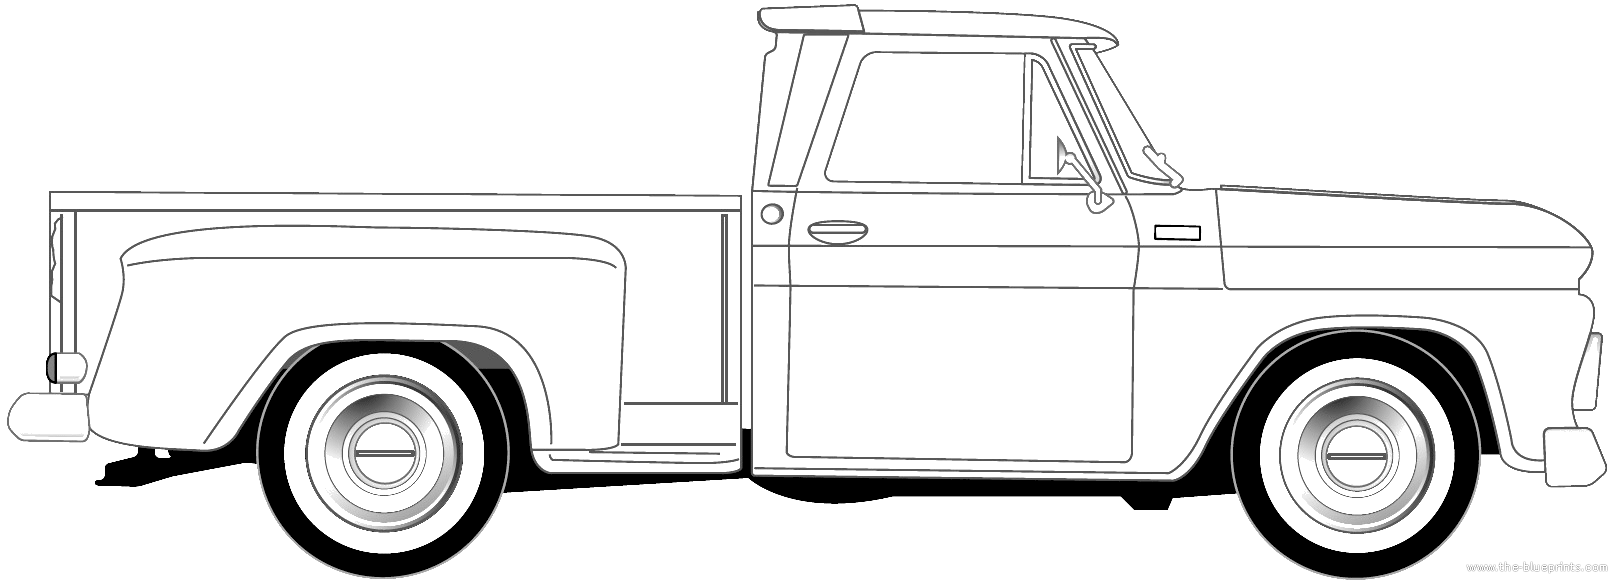 chevy pickup blueprints pictures to pin on pinterest